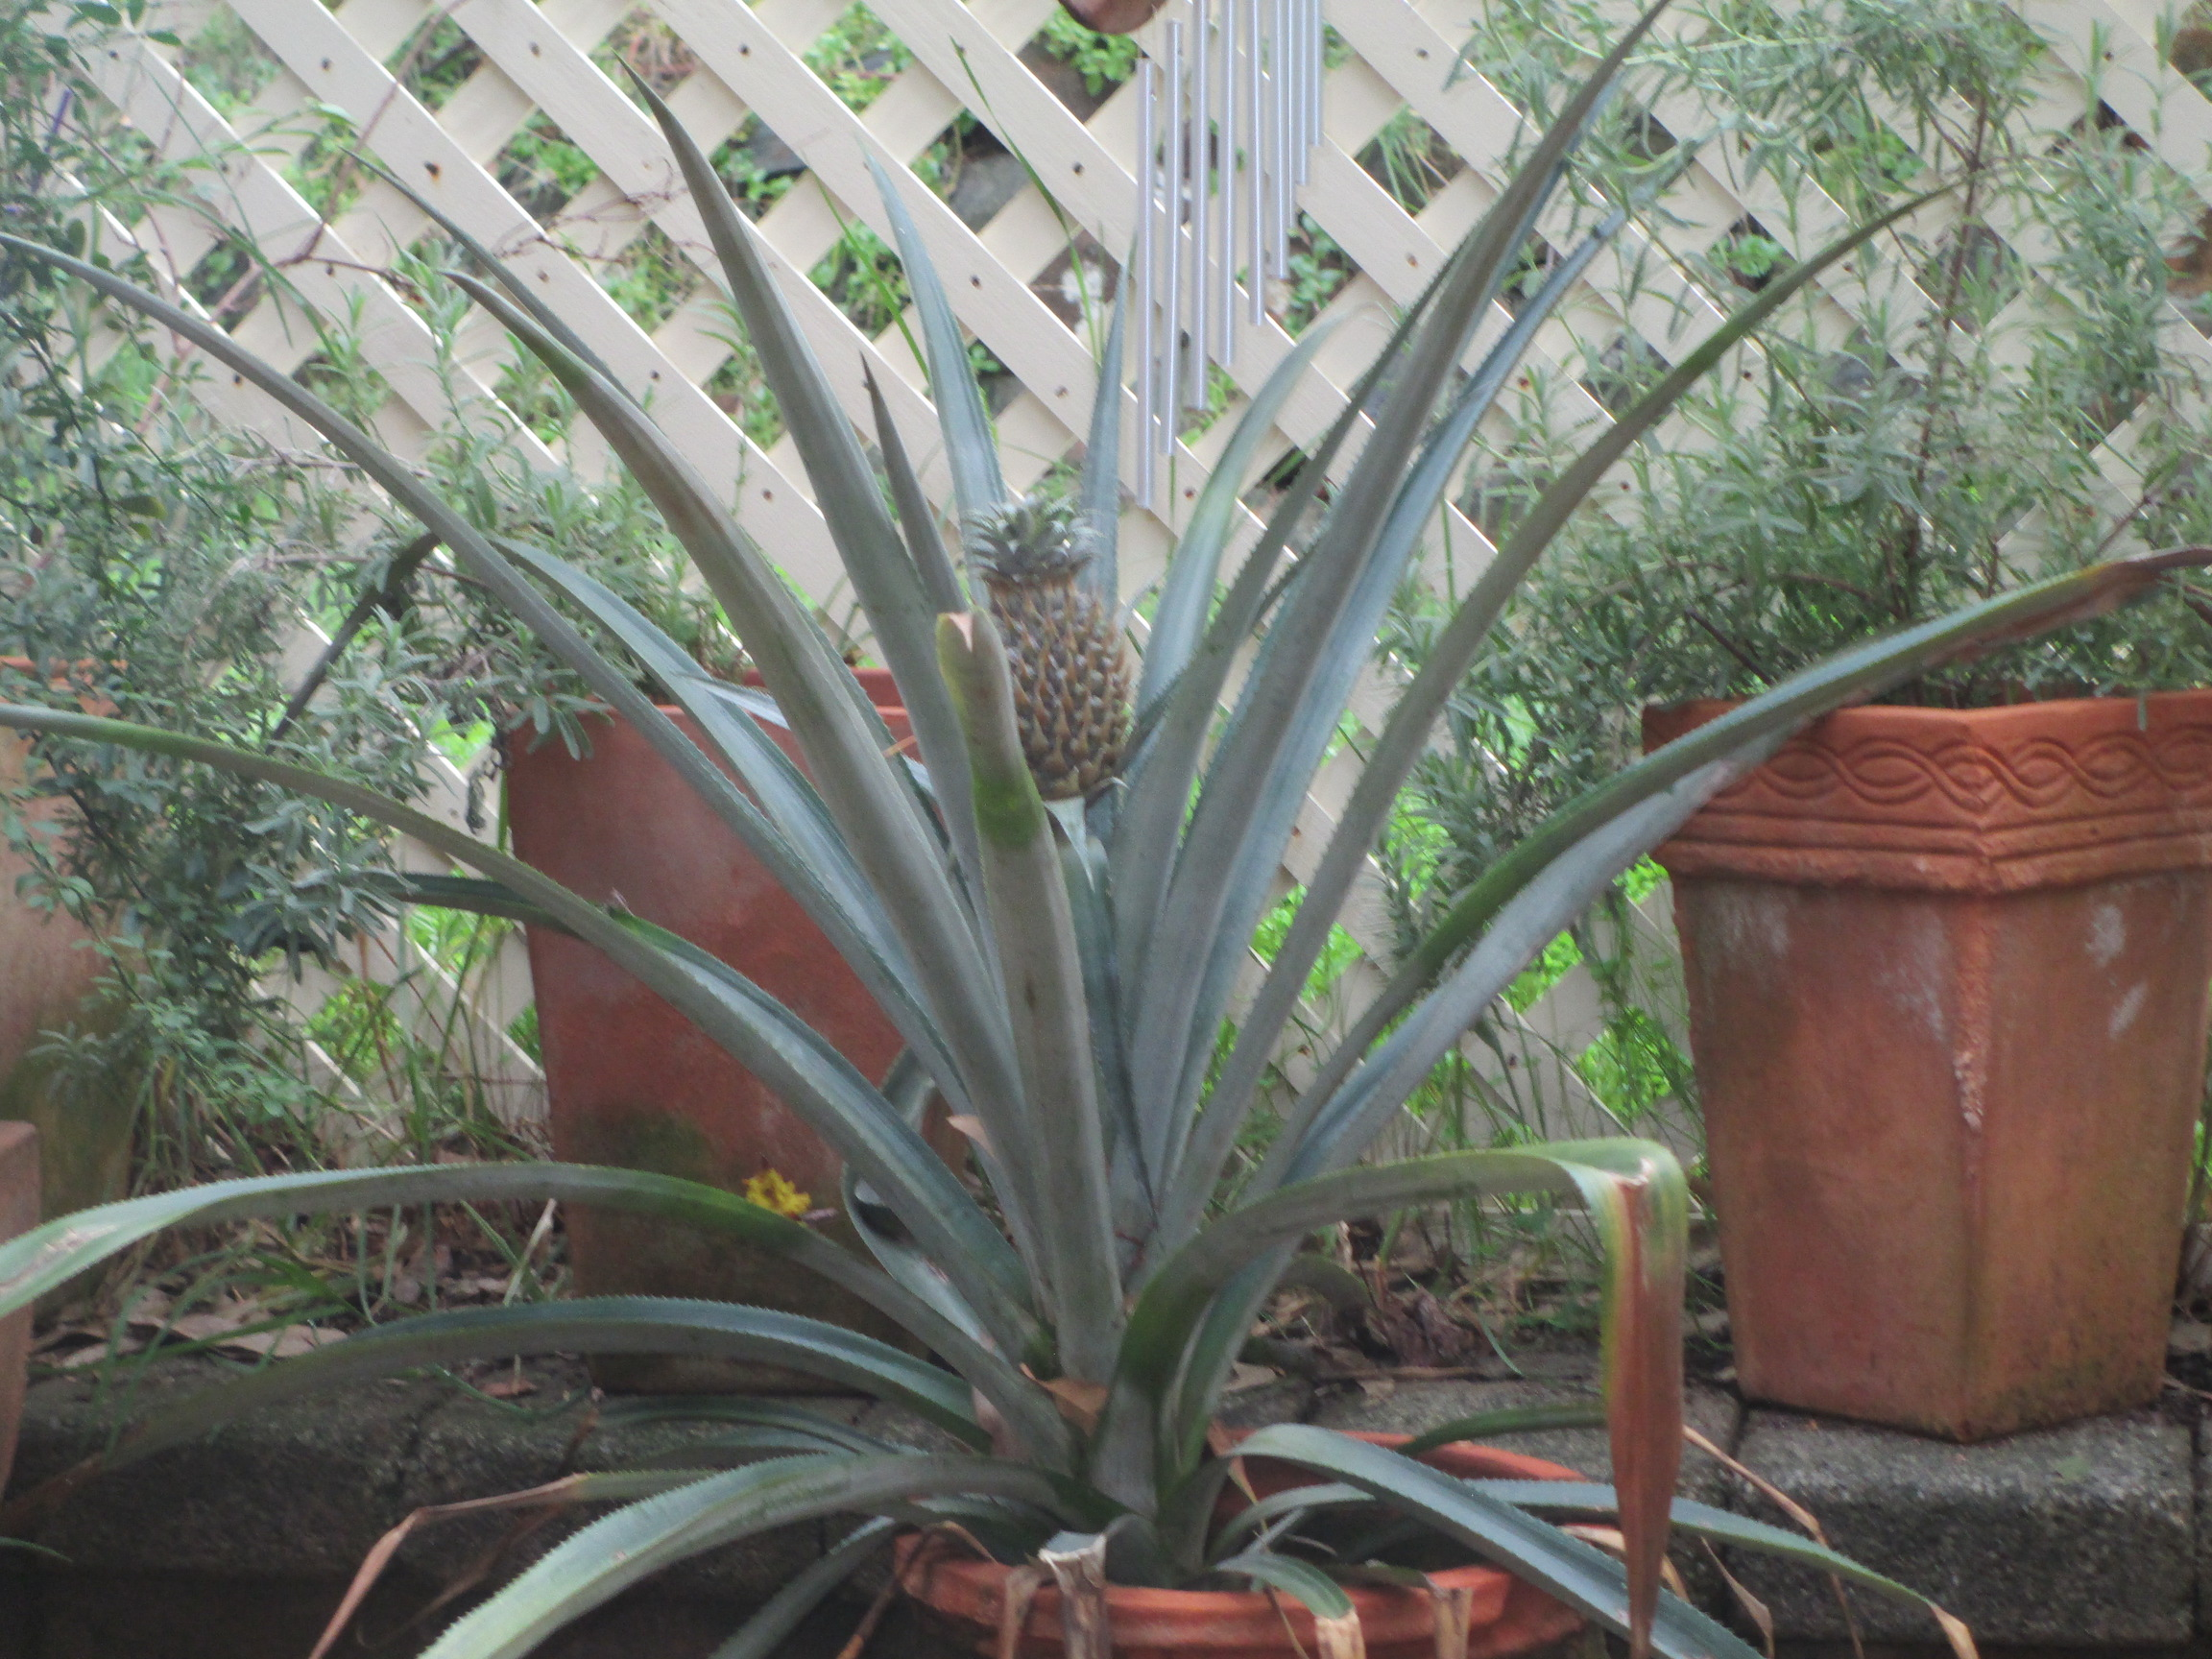 Pineapple growing in a pot